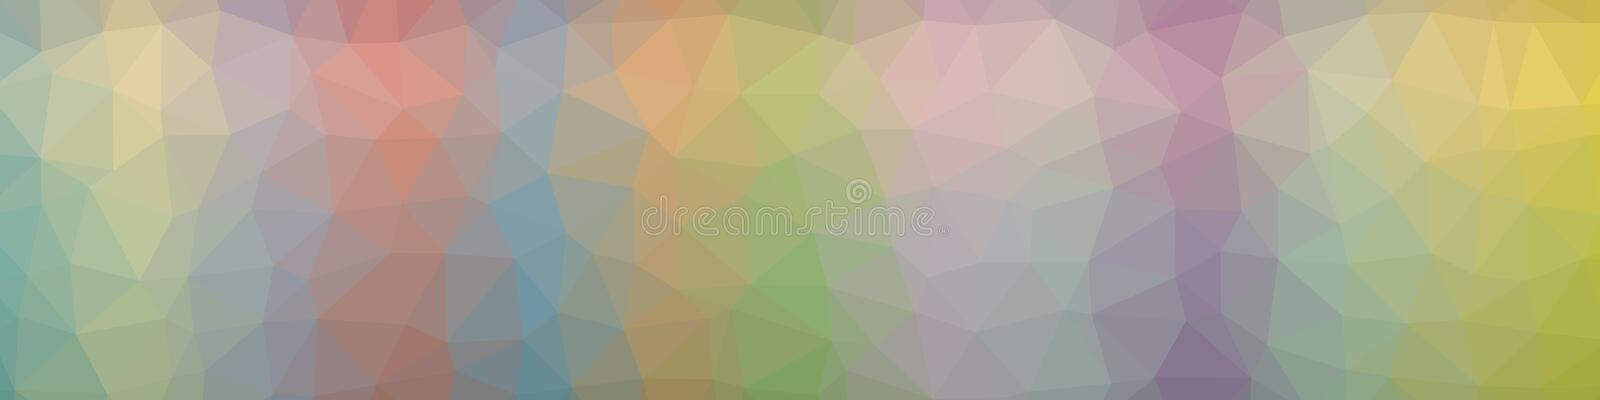 Abstract polygonal background royalty free illustration